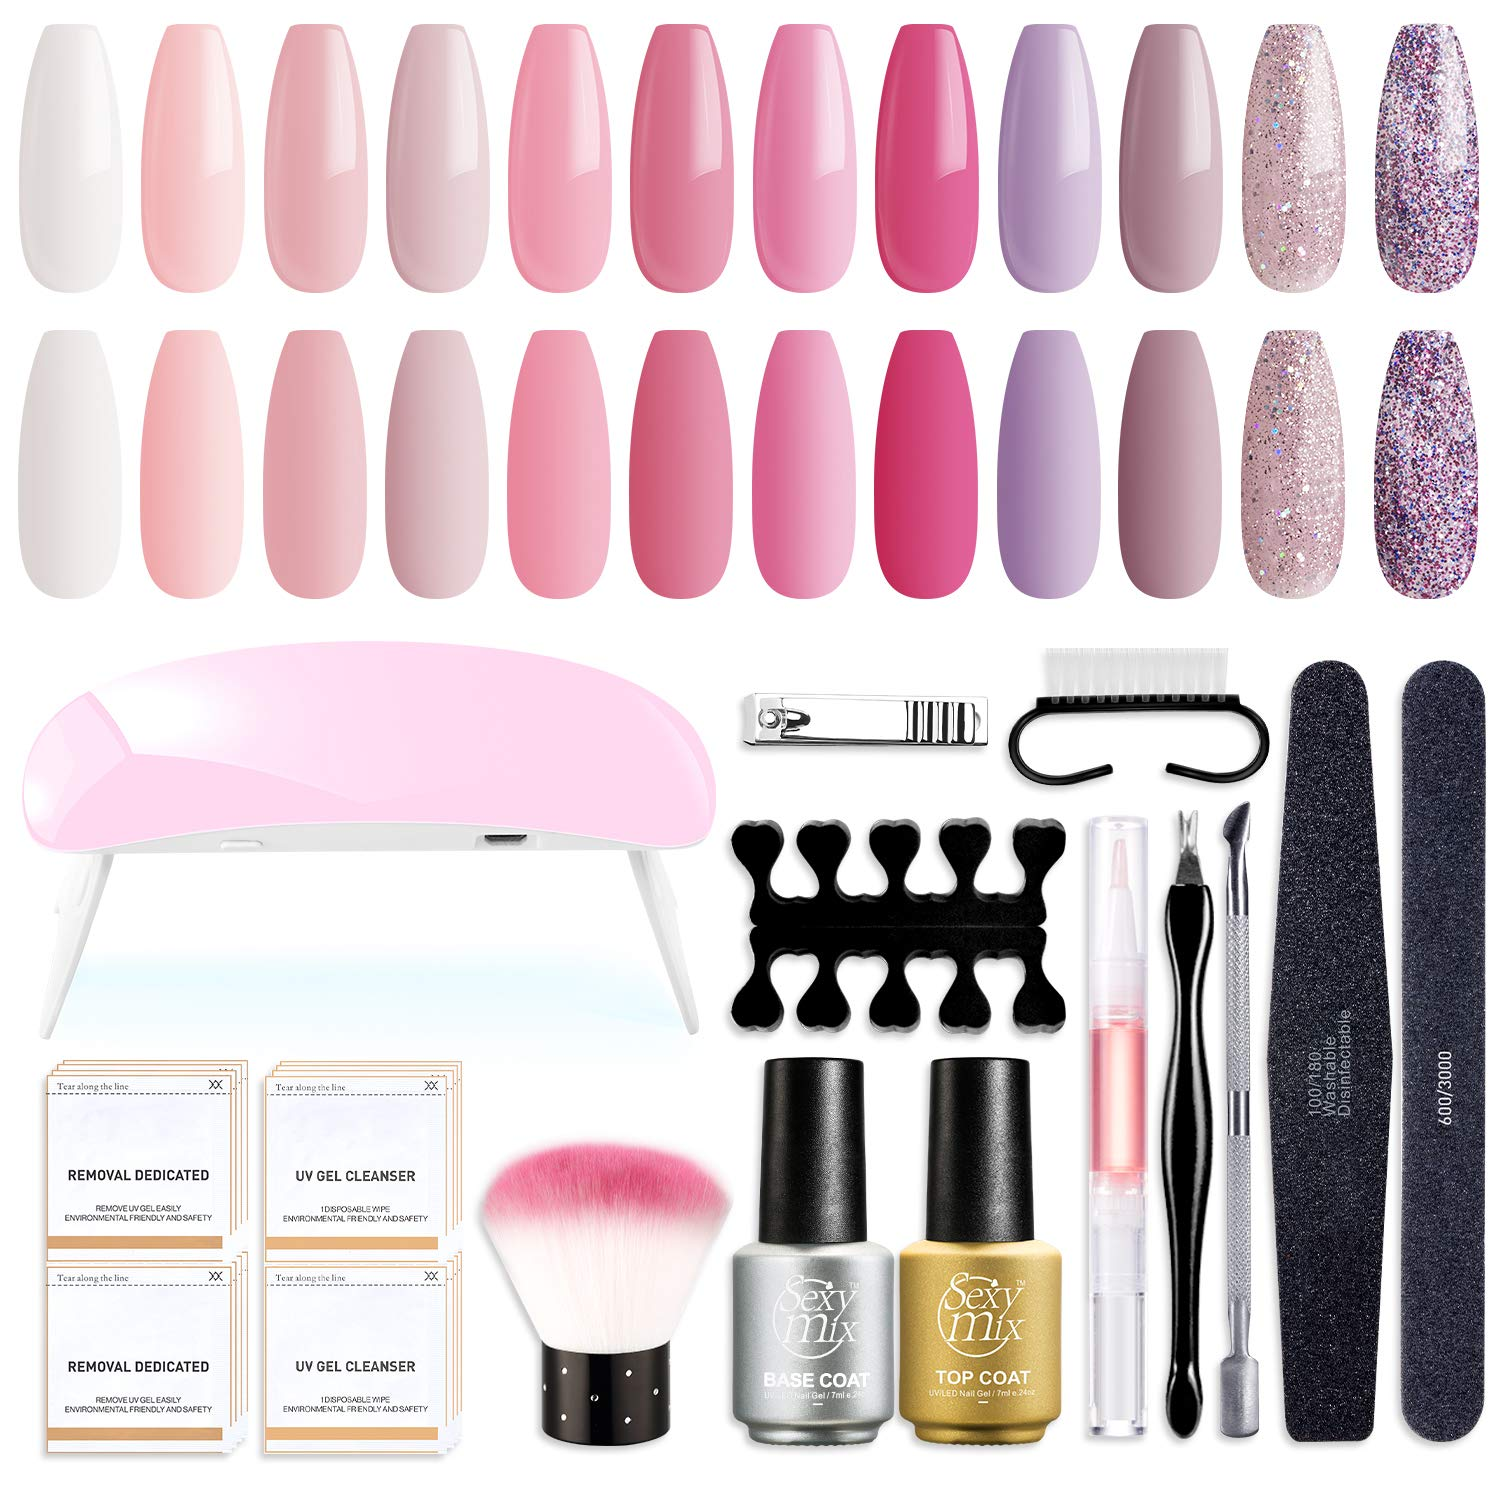 SEXY MIX Gel Nail Polish Starter Kit with LED Nail Light, with Mini 12 Lovely Nude Pink Glitter Colors Soak Off Gel Nail Polish, Base and Top Coat, Nail Art Manicure Tools Kit